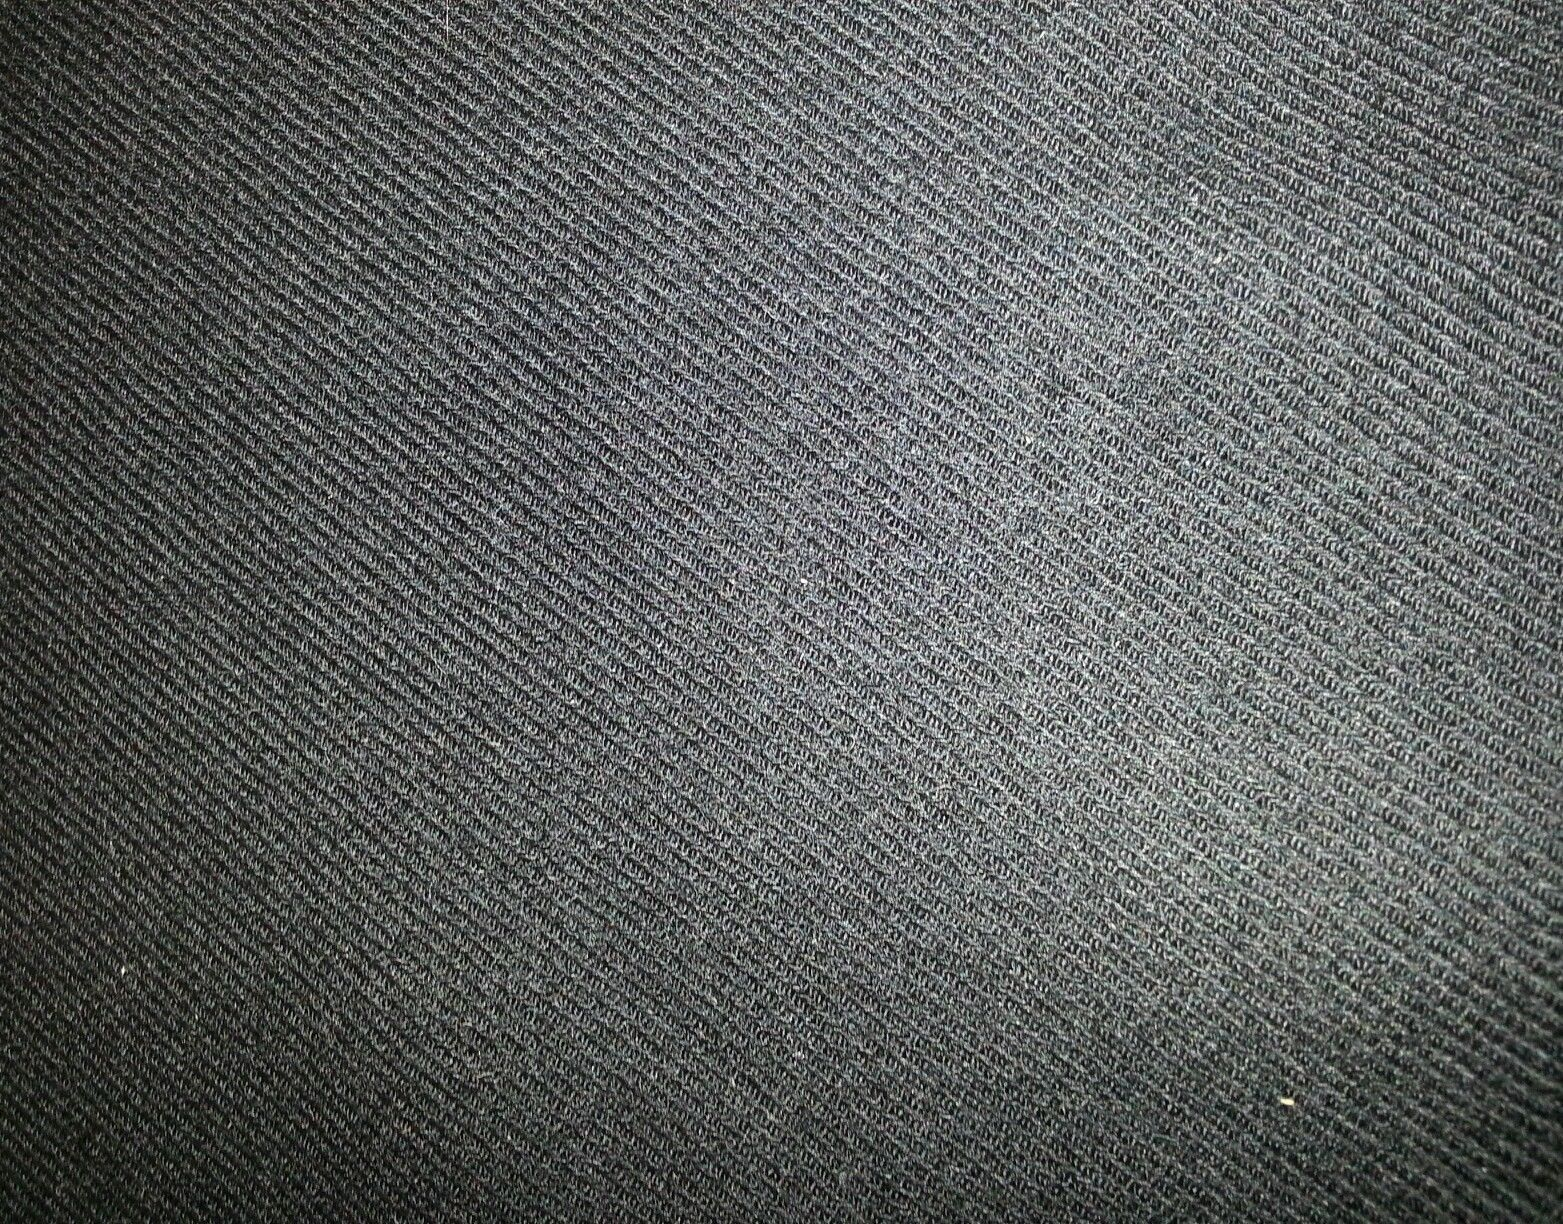 Black Twill Full Weight  Wool Suit coat Fabric 9.5 Yards MSRP 1650